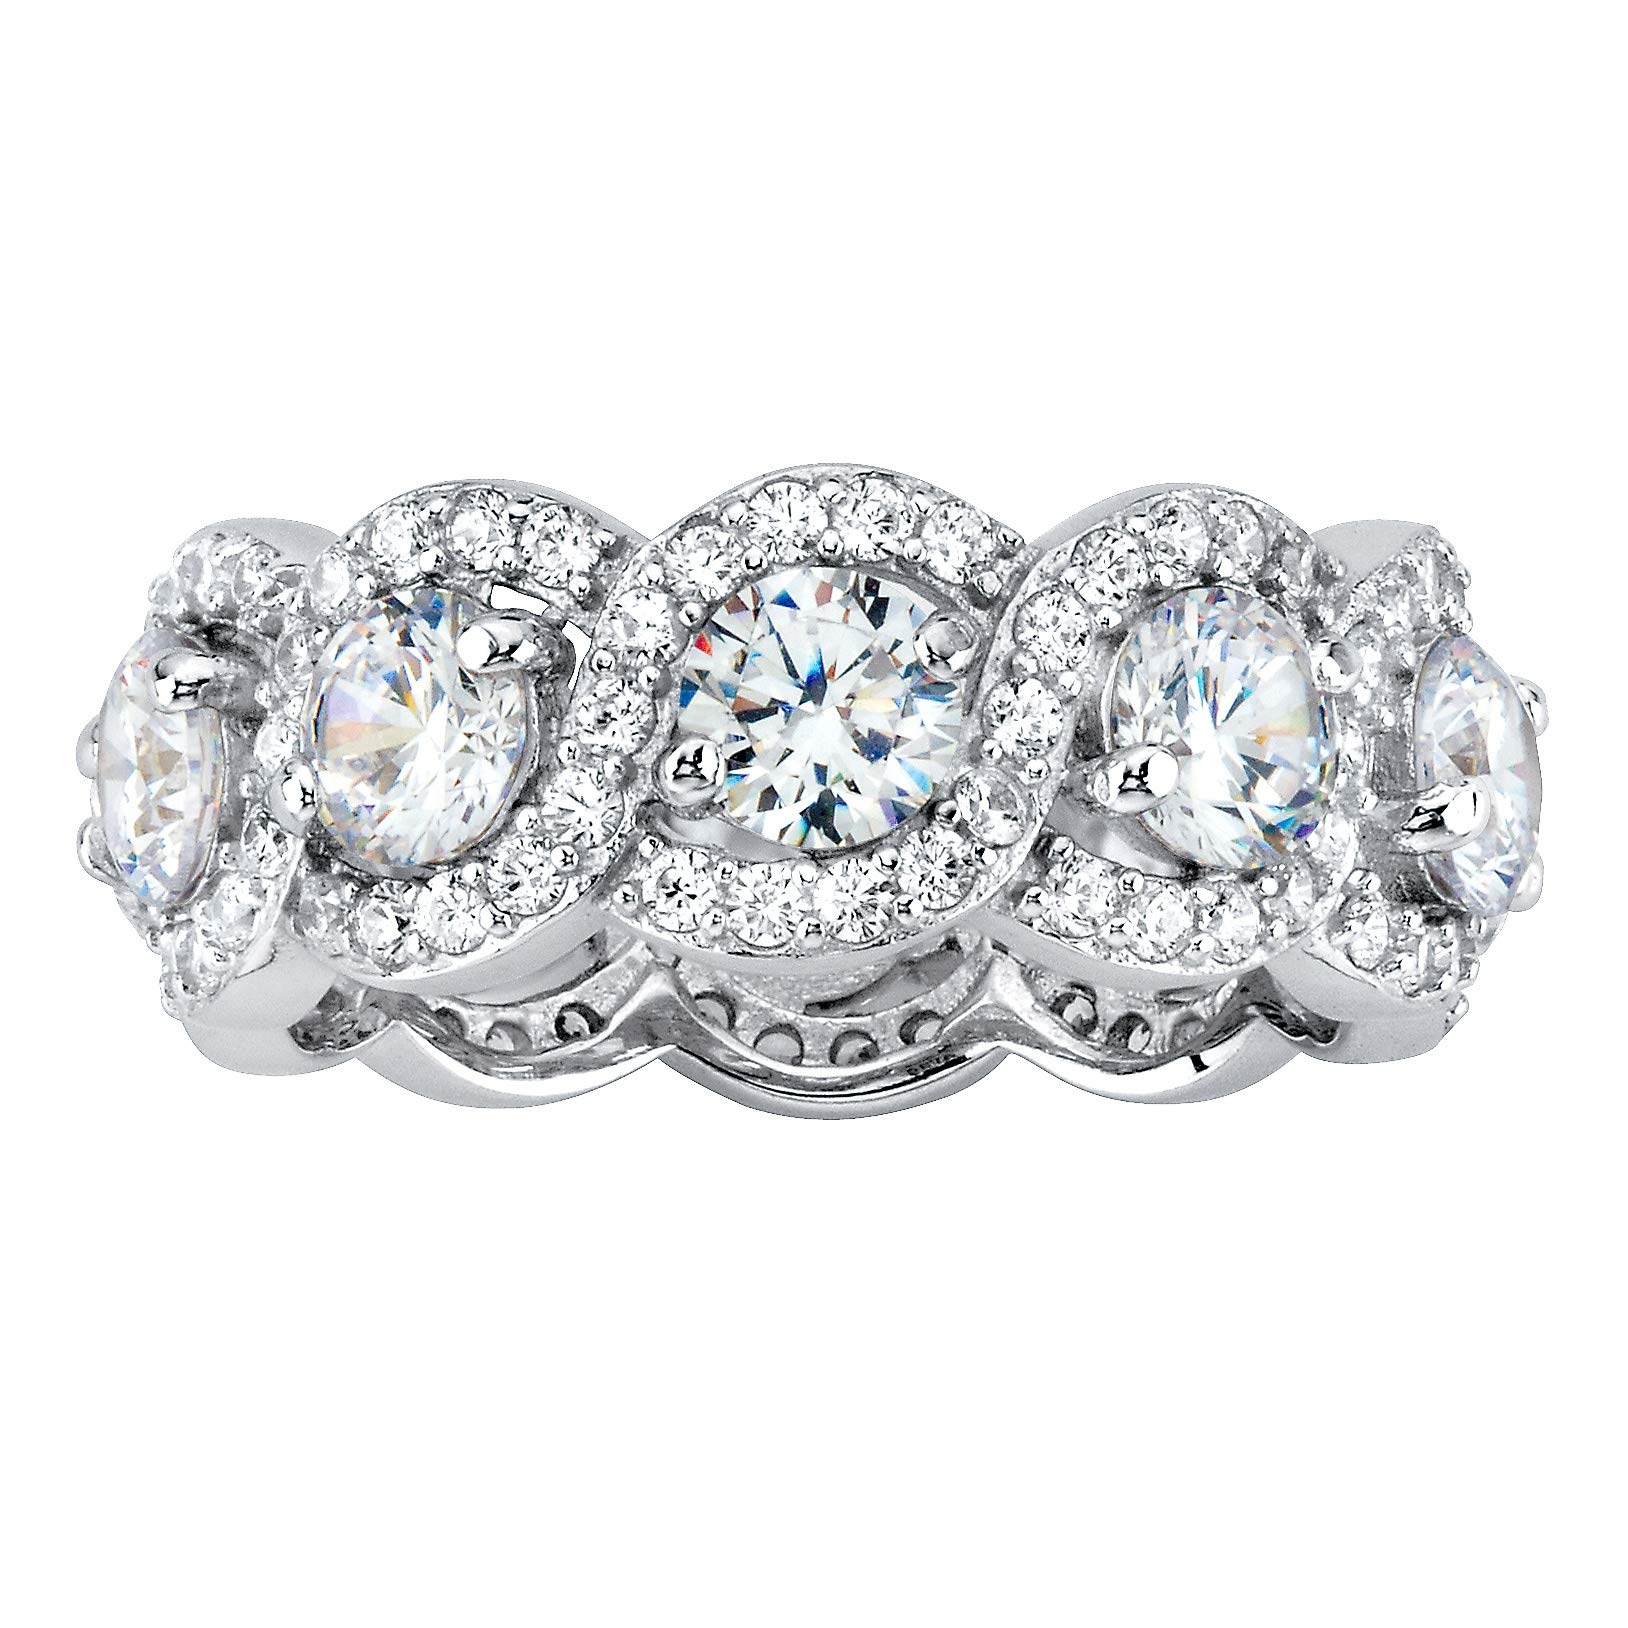 Round White Cubic Zirconia Platinum over .925 Sterling Silver Halo Crossover Eternity Ring